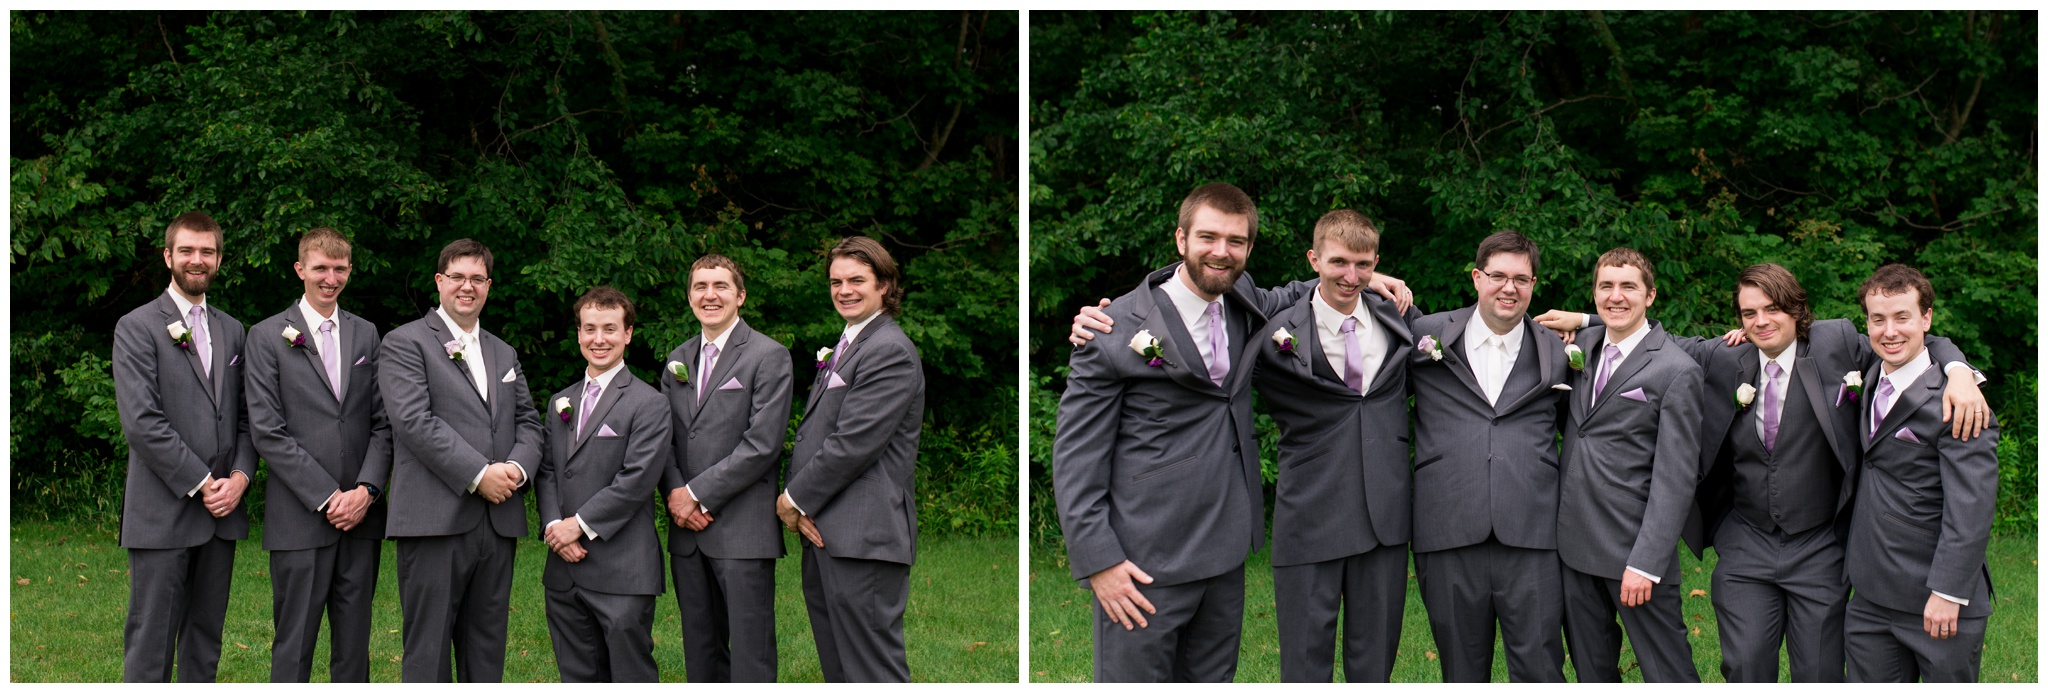 groom and groomsmen portraits before Kokomo Indiana wedding